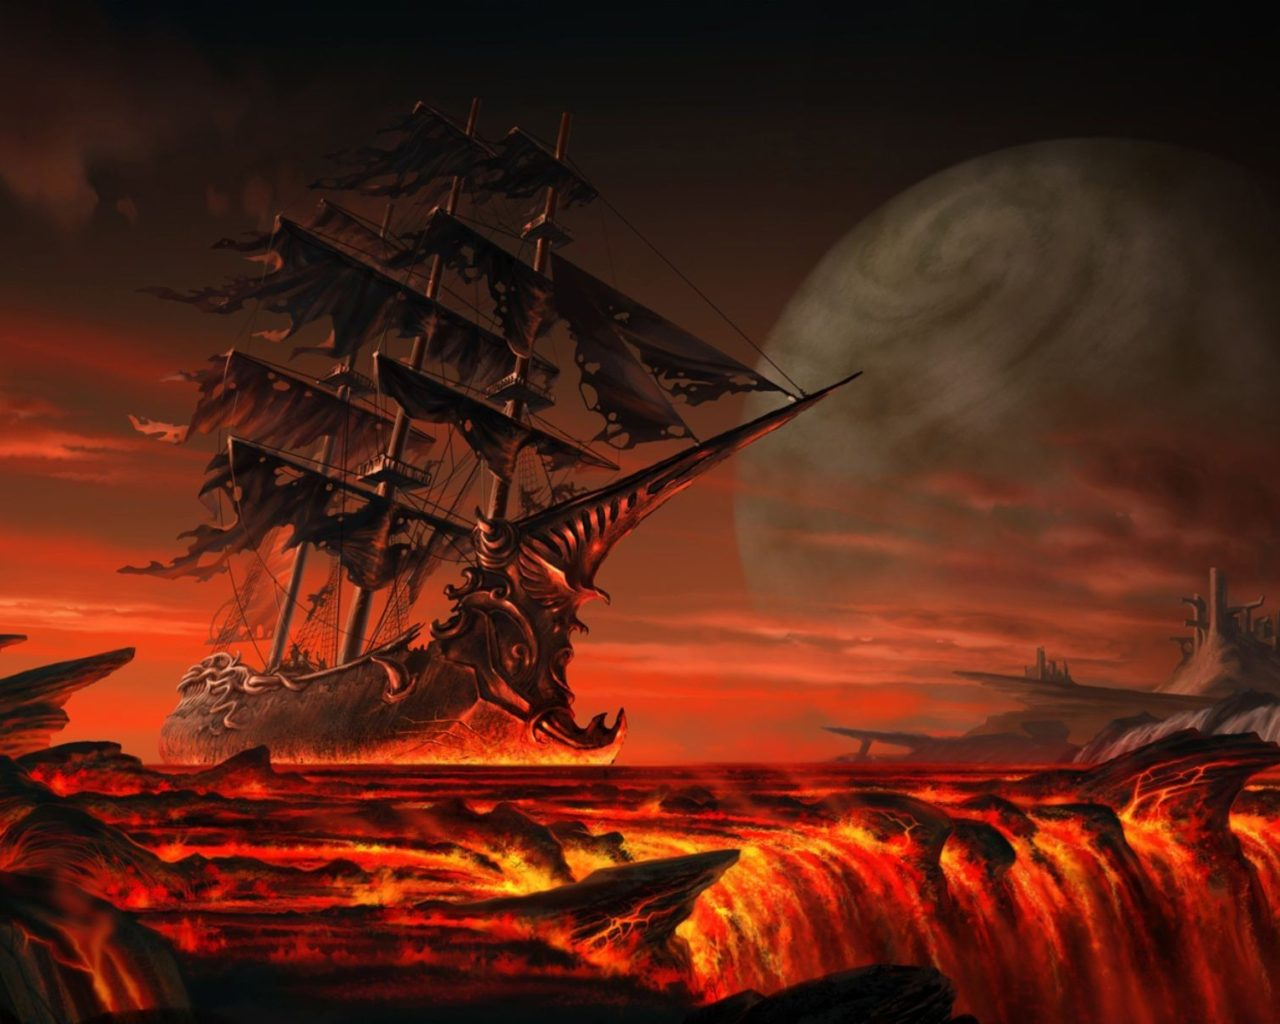 3d Ghost Wallpaper Download Pirate Ship Pirates Lava Ships Fantasy Art 3d Sailing